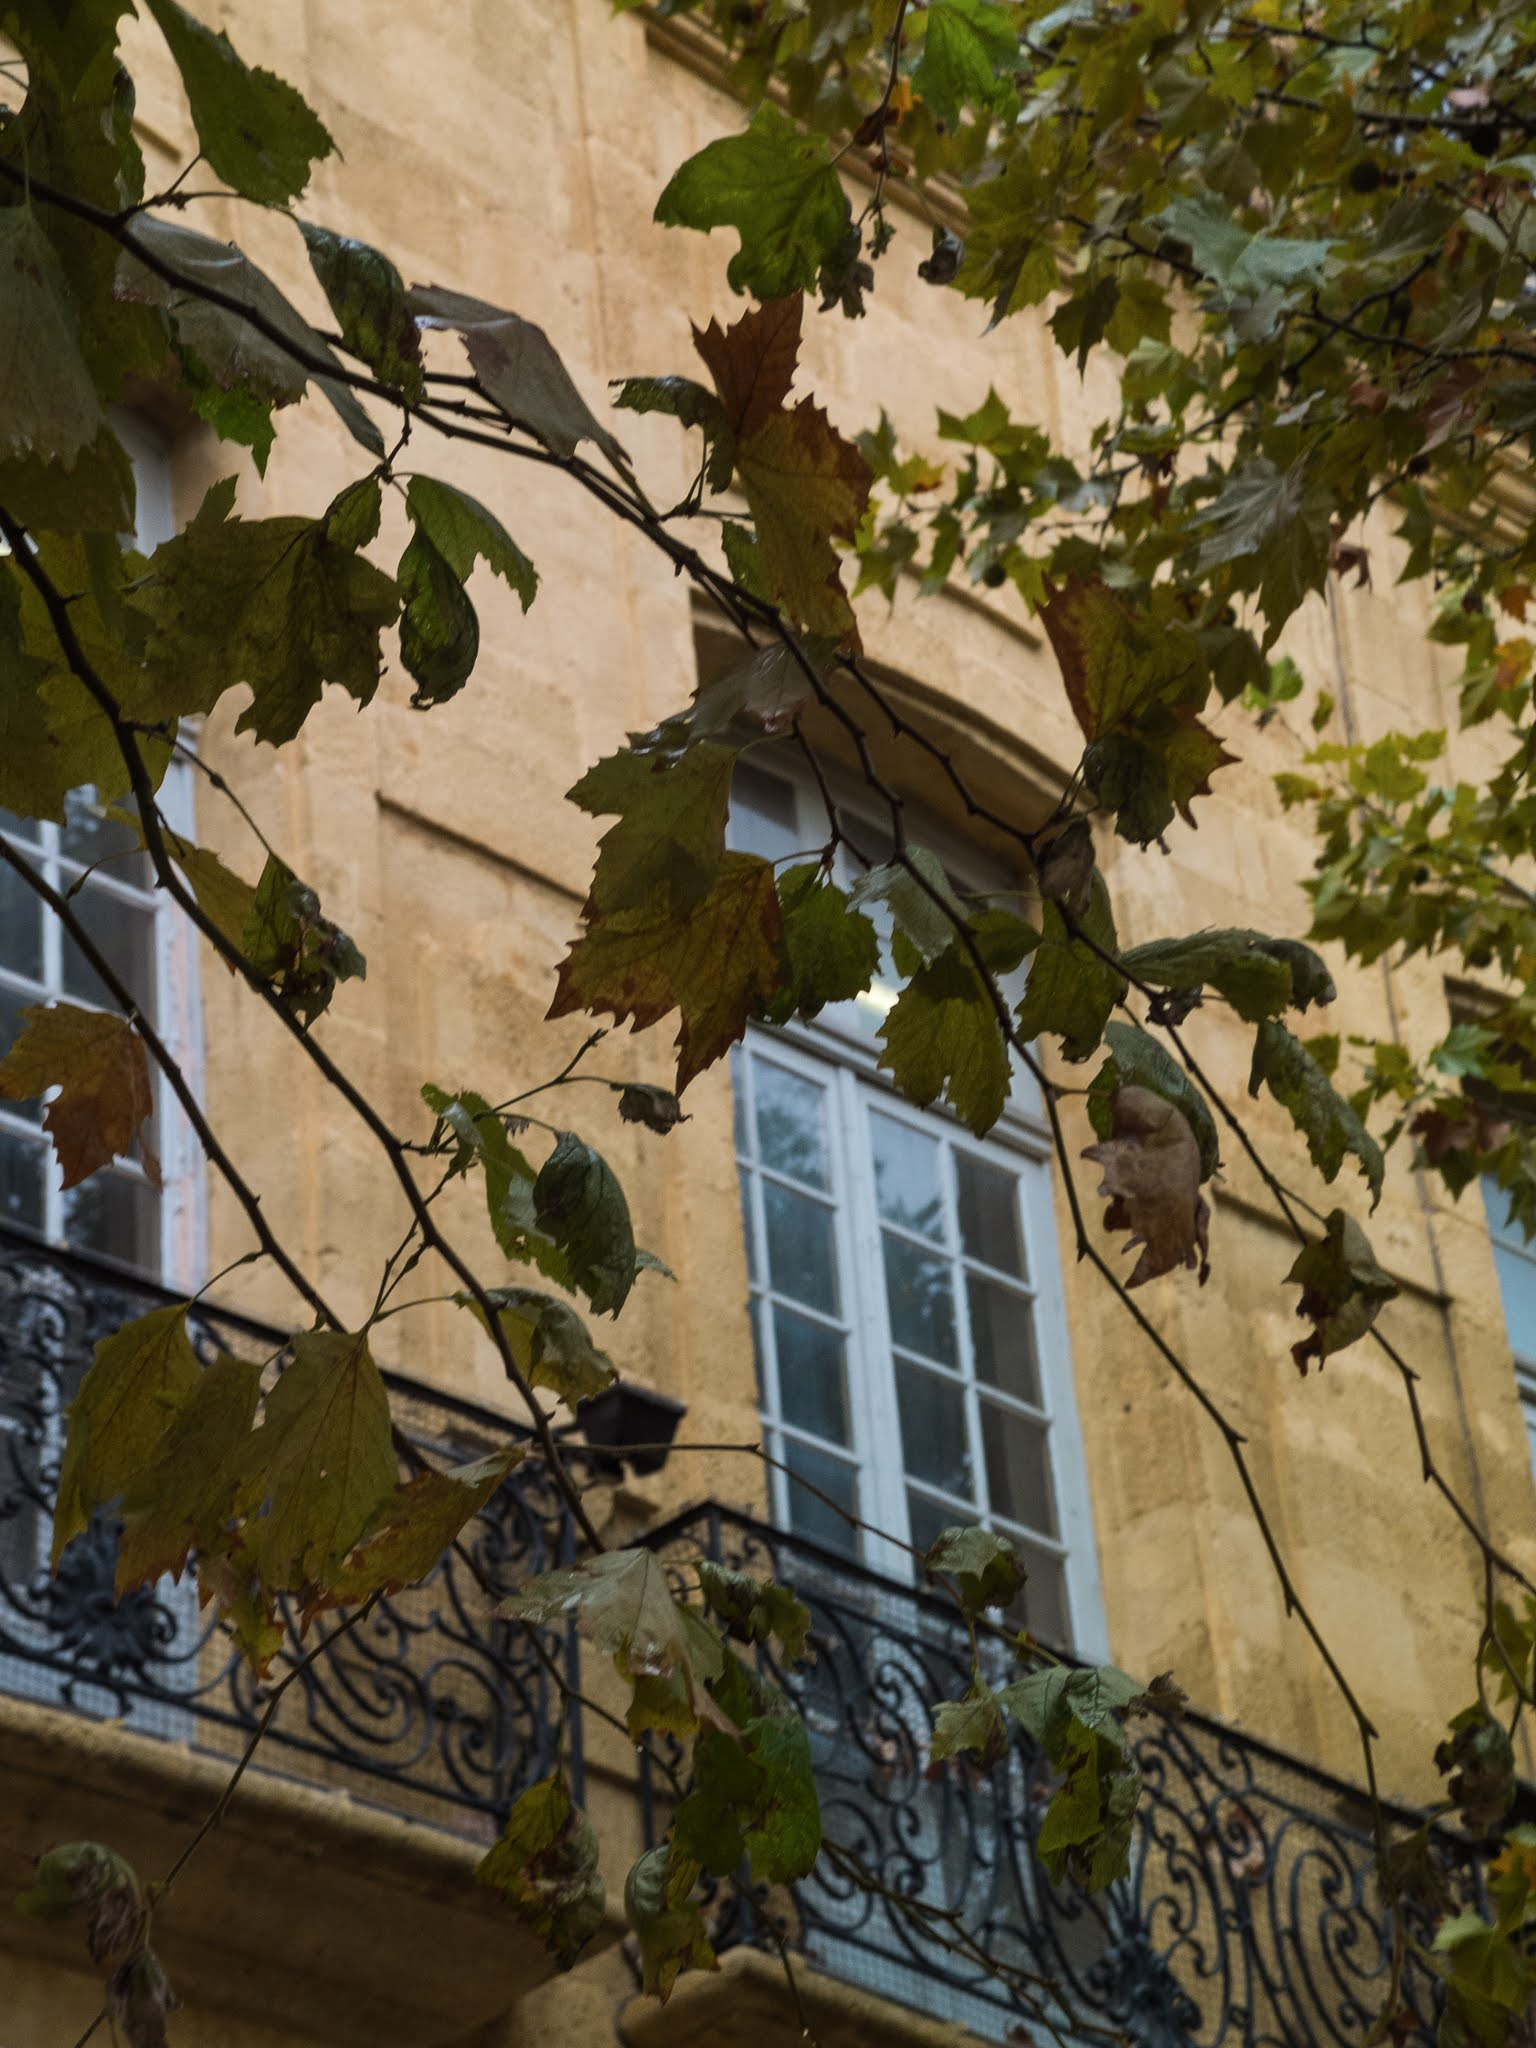 Windows, balconies and plane tree branches on Cours Mirabeau in Aix-en-Provence.